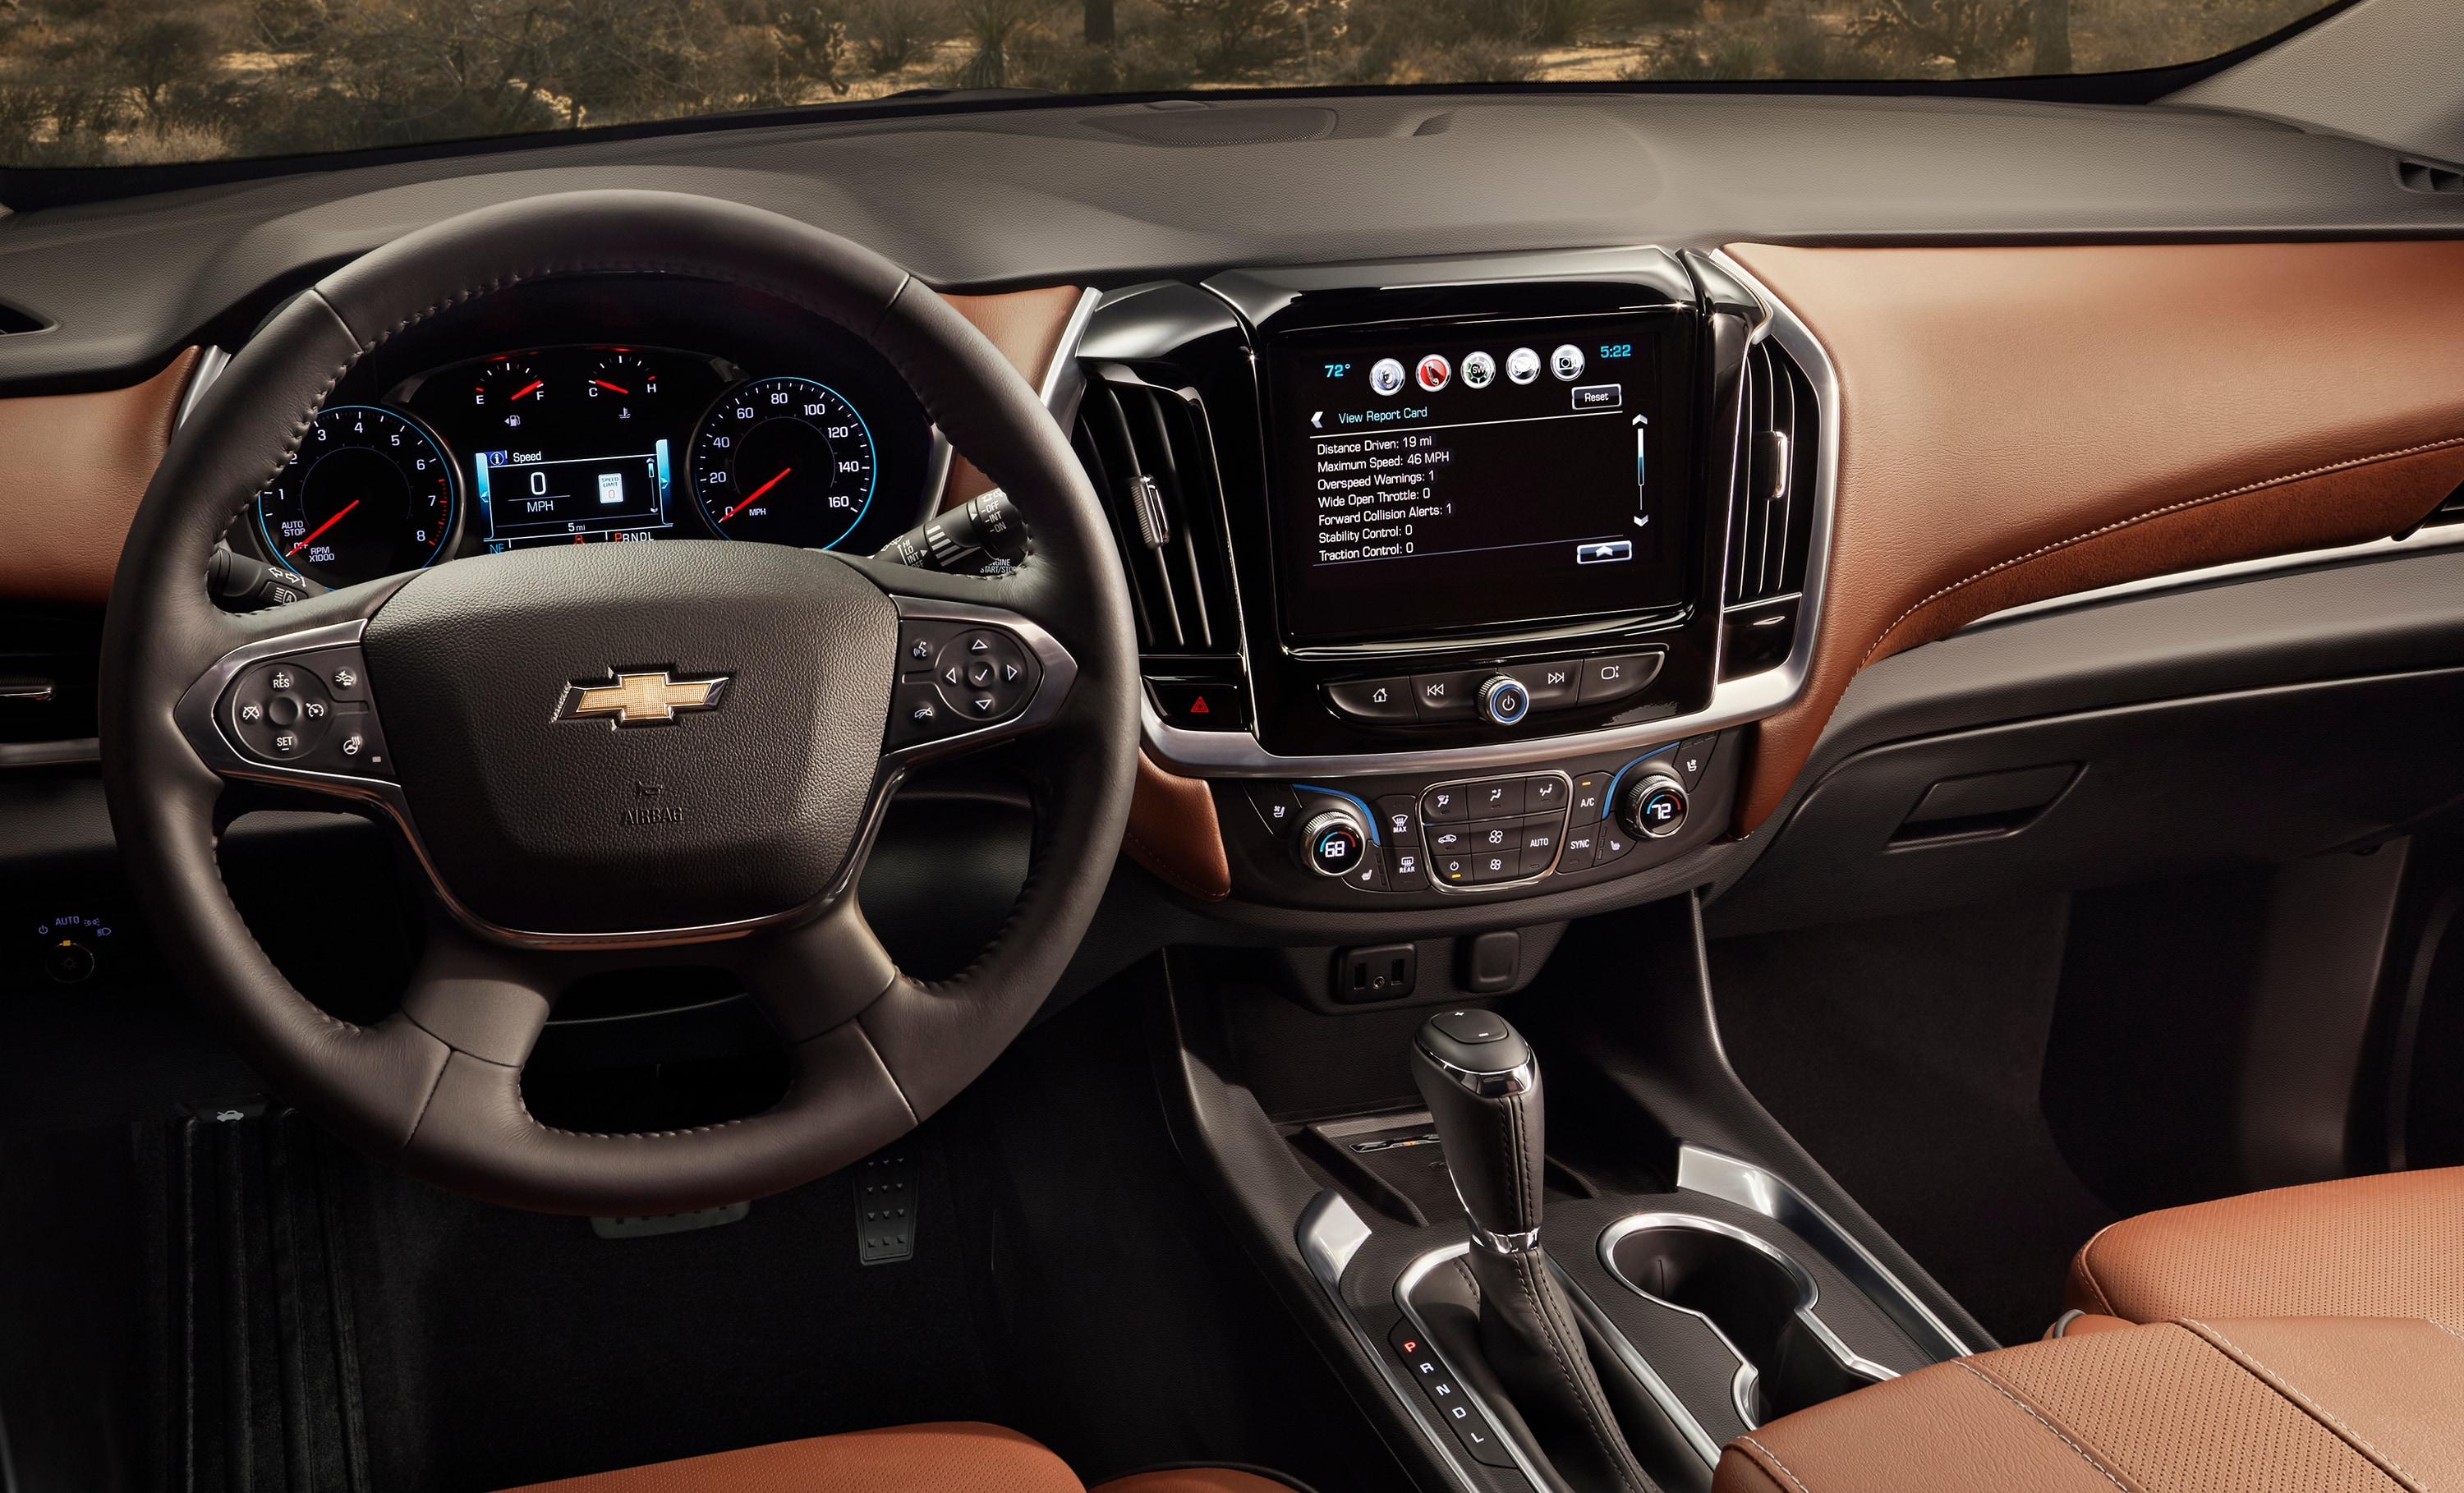 2018 Chevy Traverse interior photo